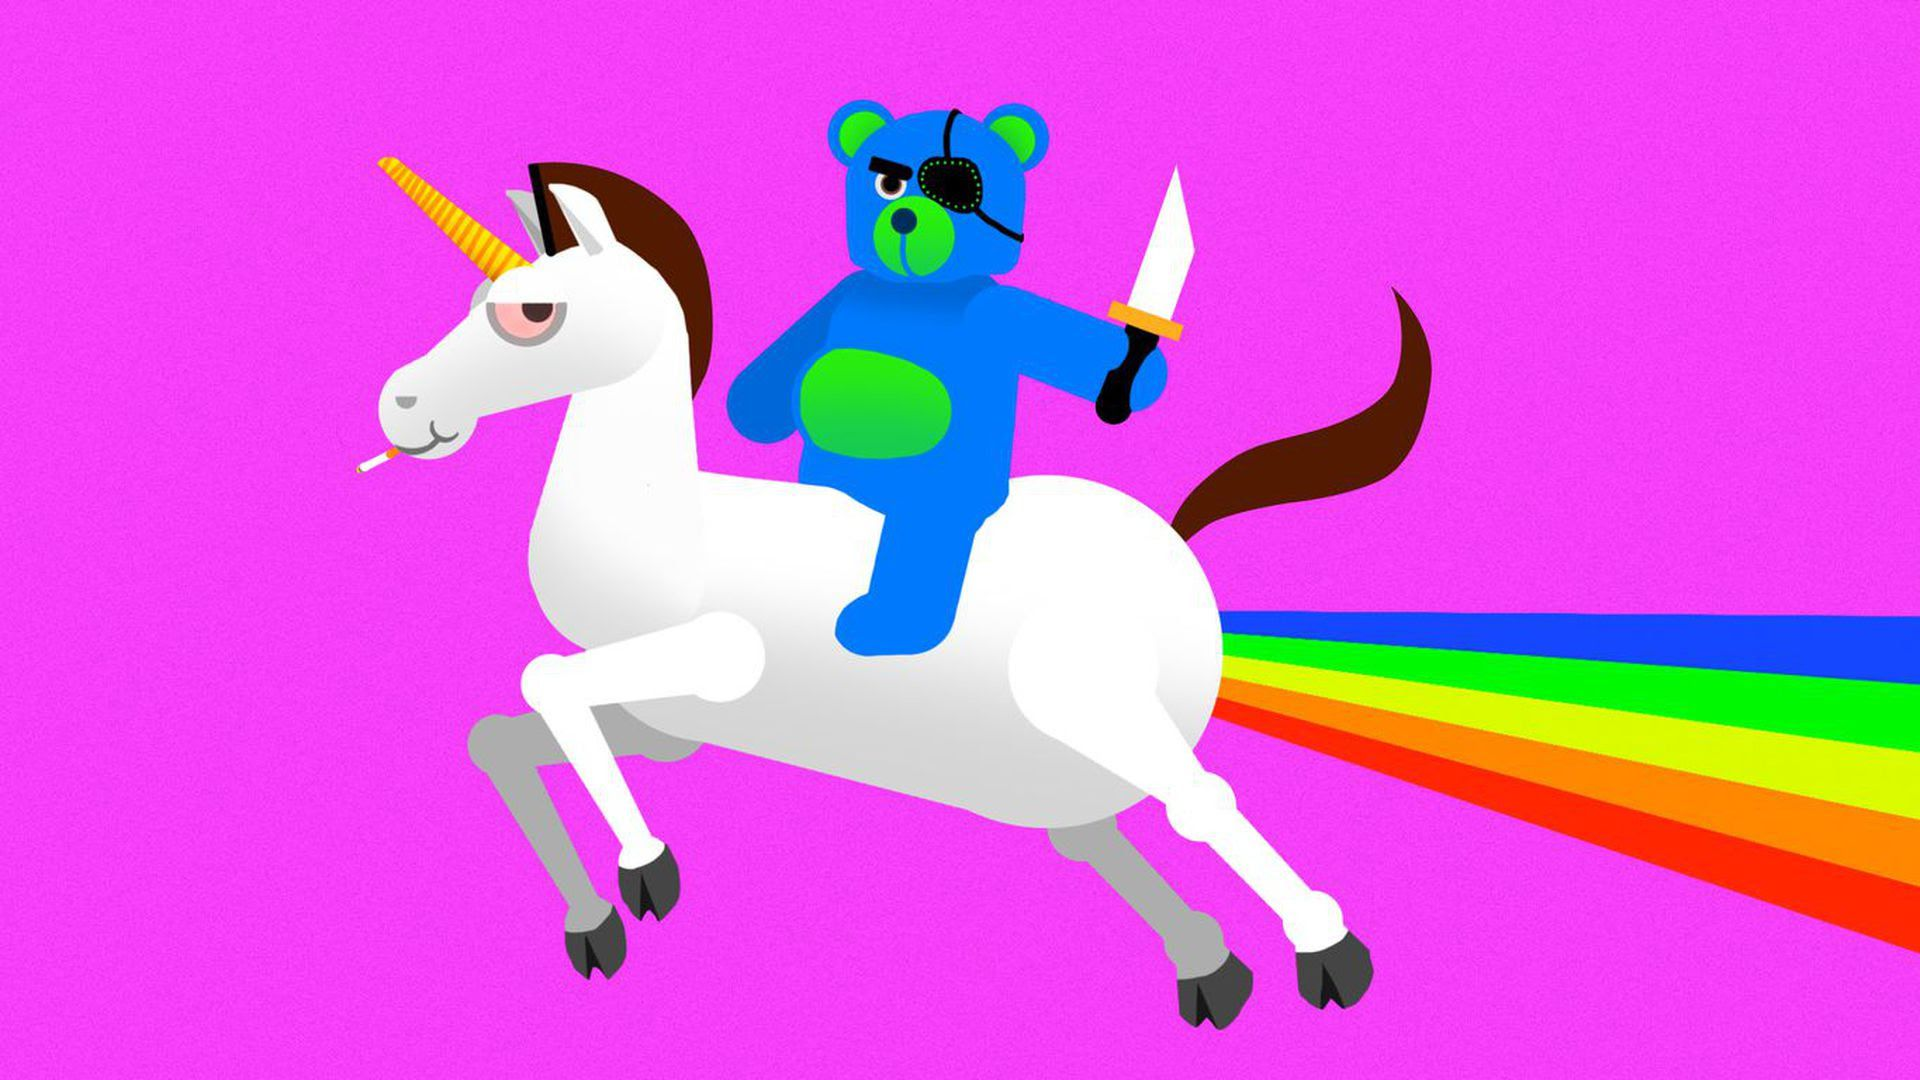 A child-like illustration of a bear on a unicorn with a rainbow in the background.